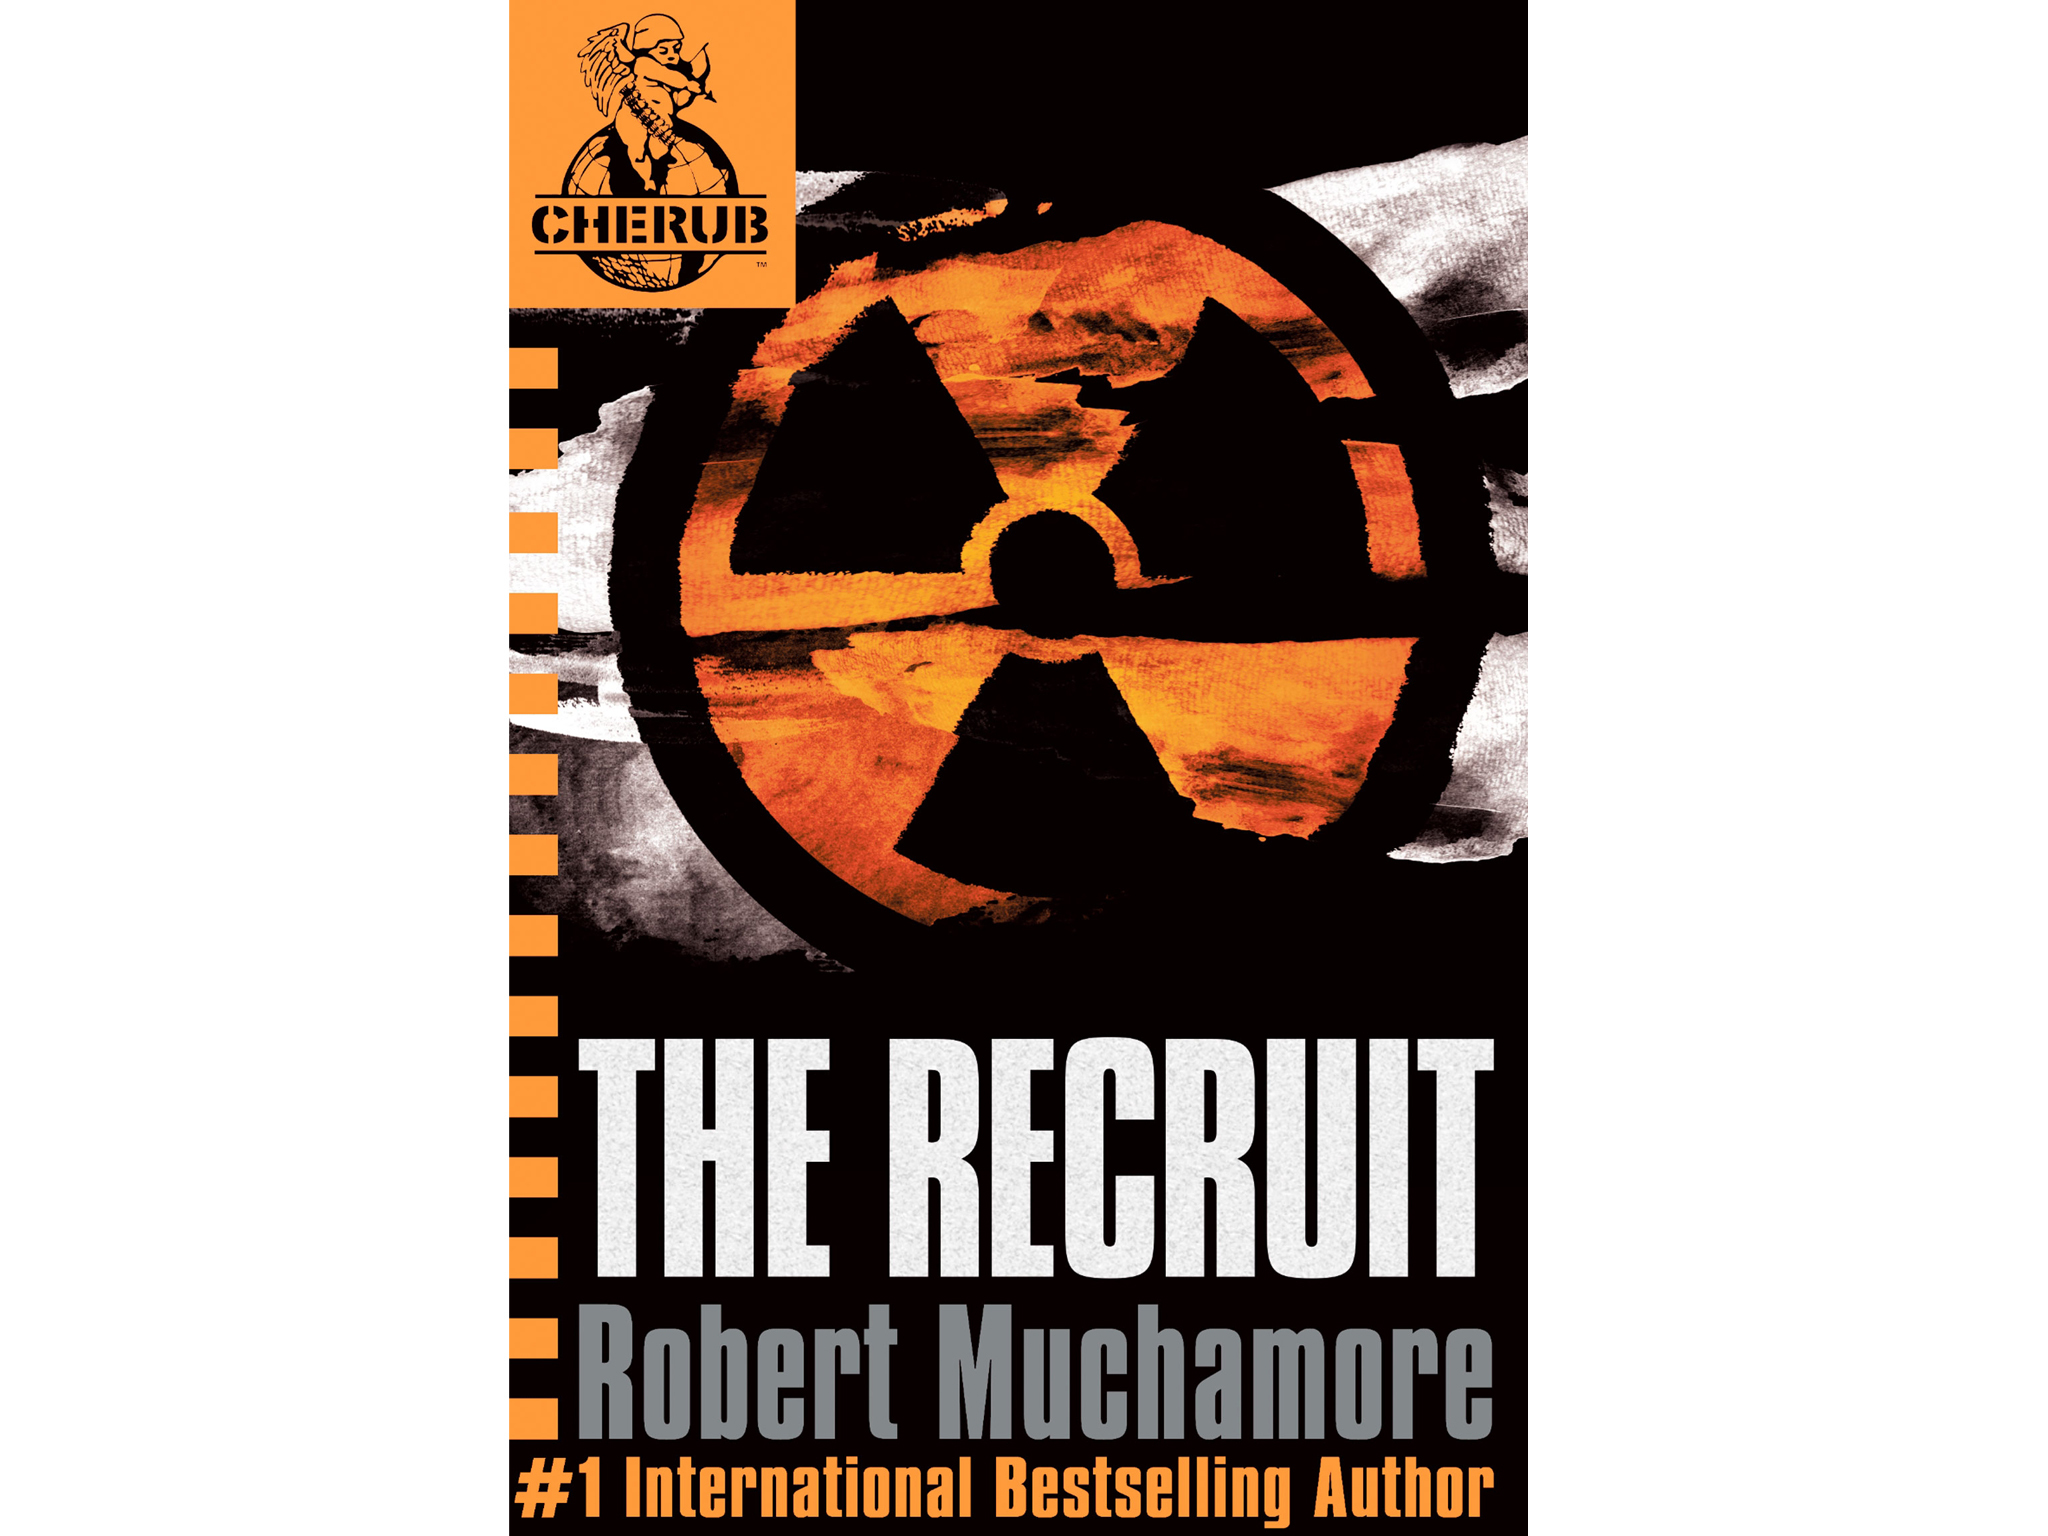 100 best children's books: The Recruit